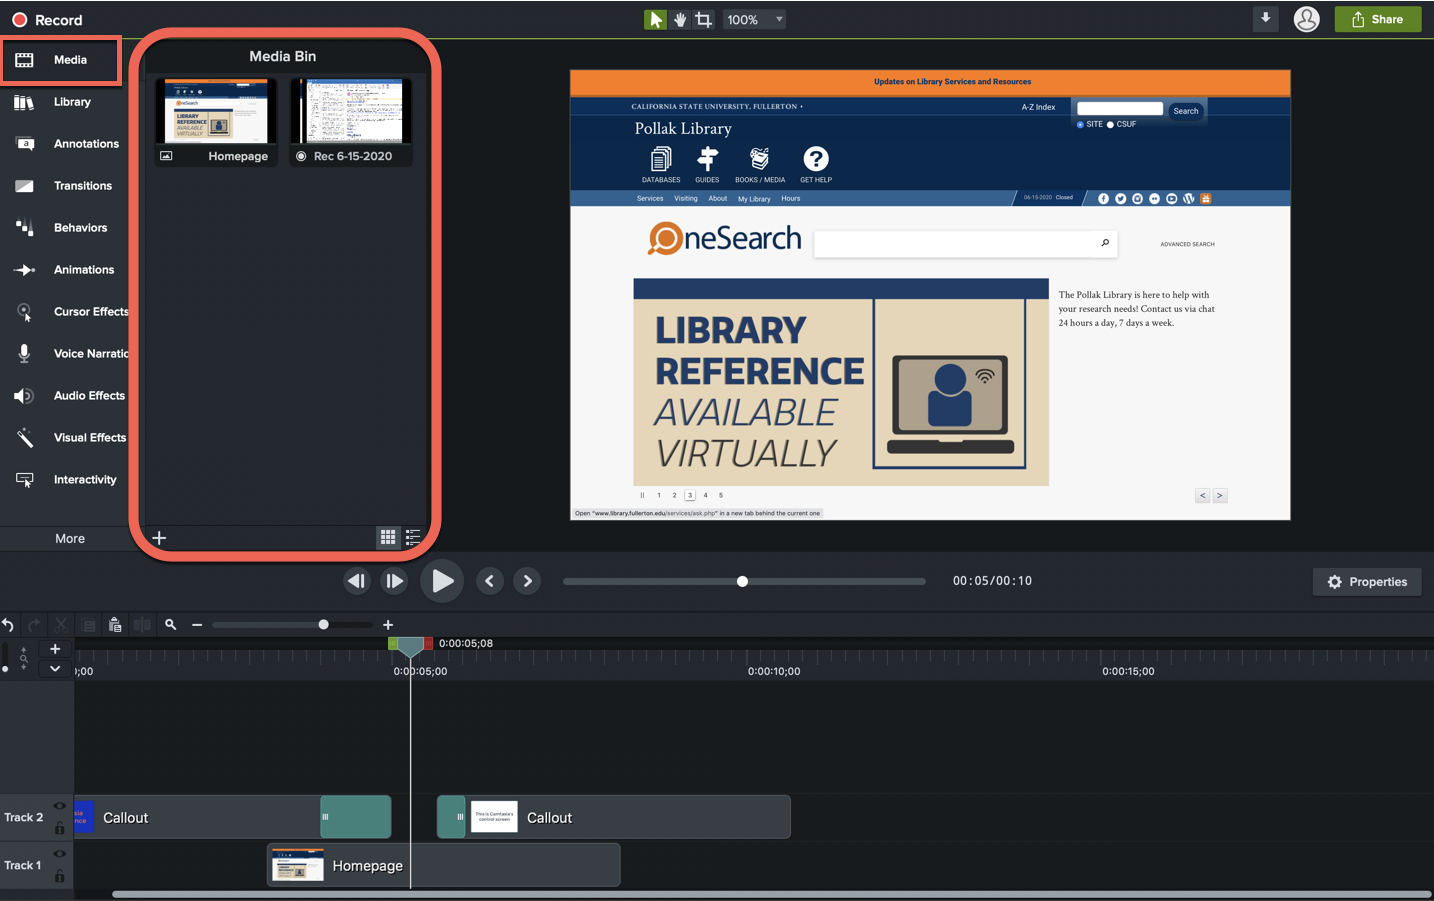 Screenshot of Camtasia window with Media bin highlighted